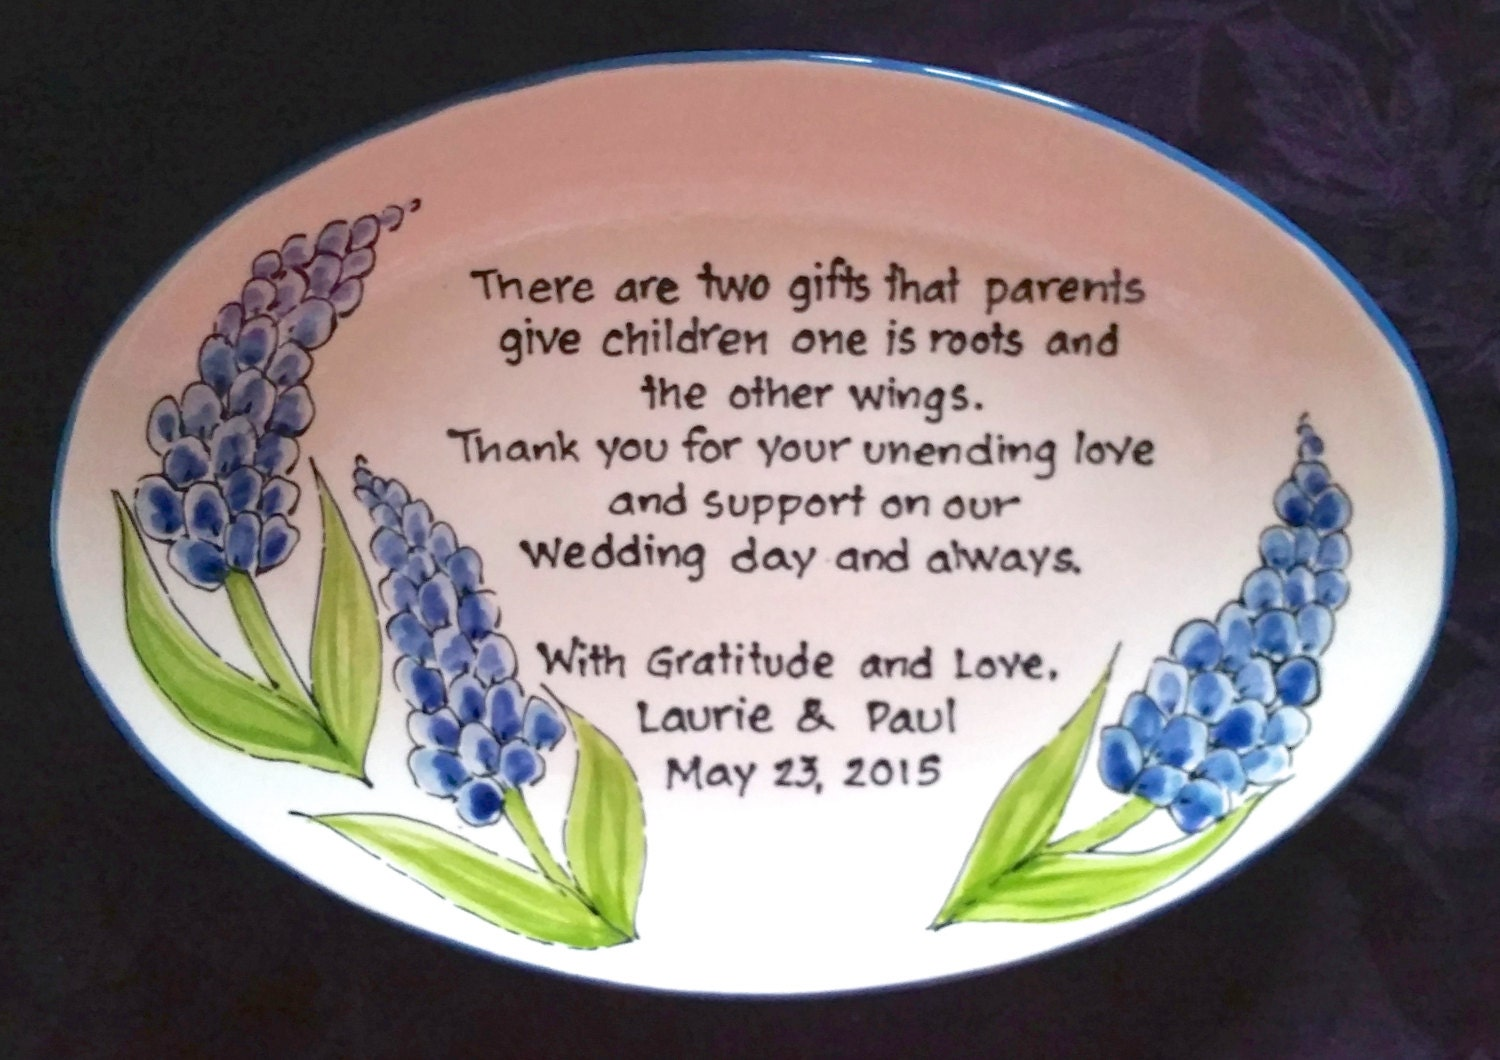 Parents Gift Wedding: Wedding Gift For Parents Plate Thank You Mom And Dad